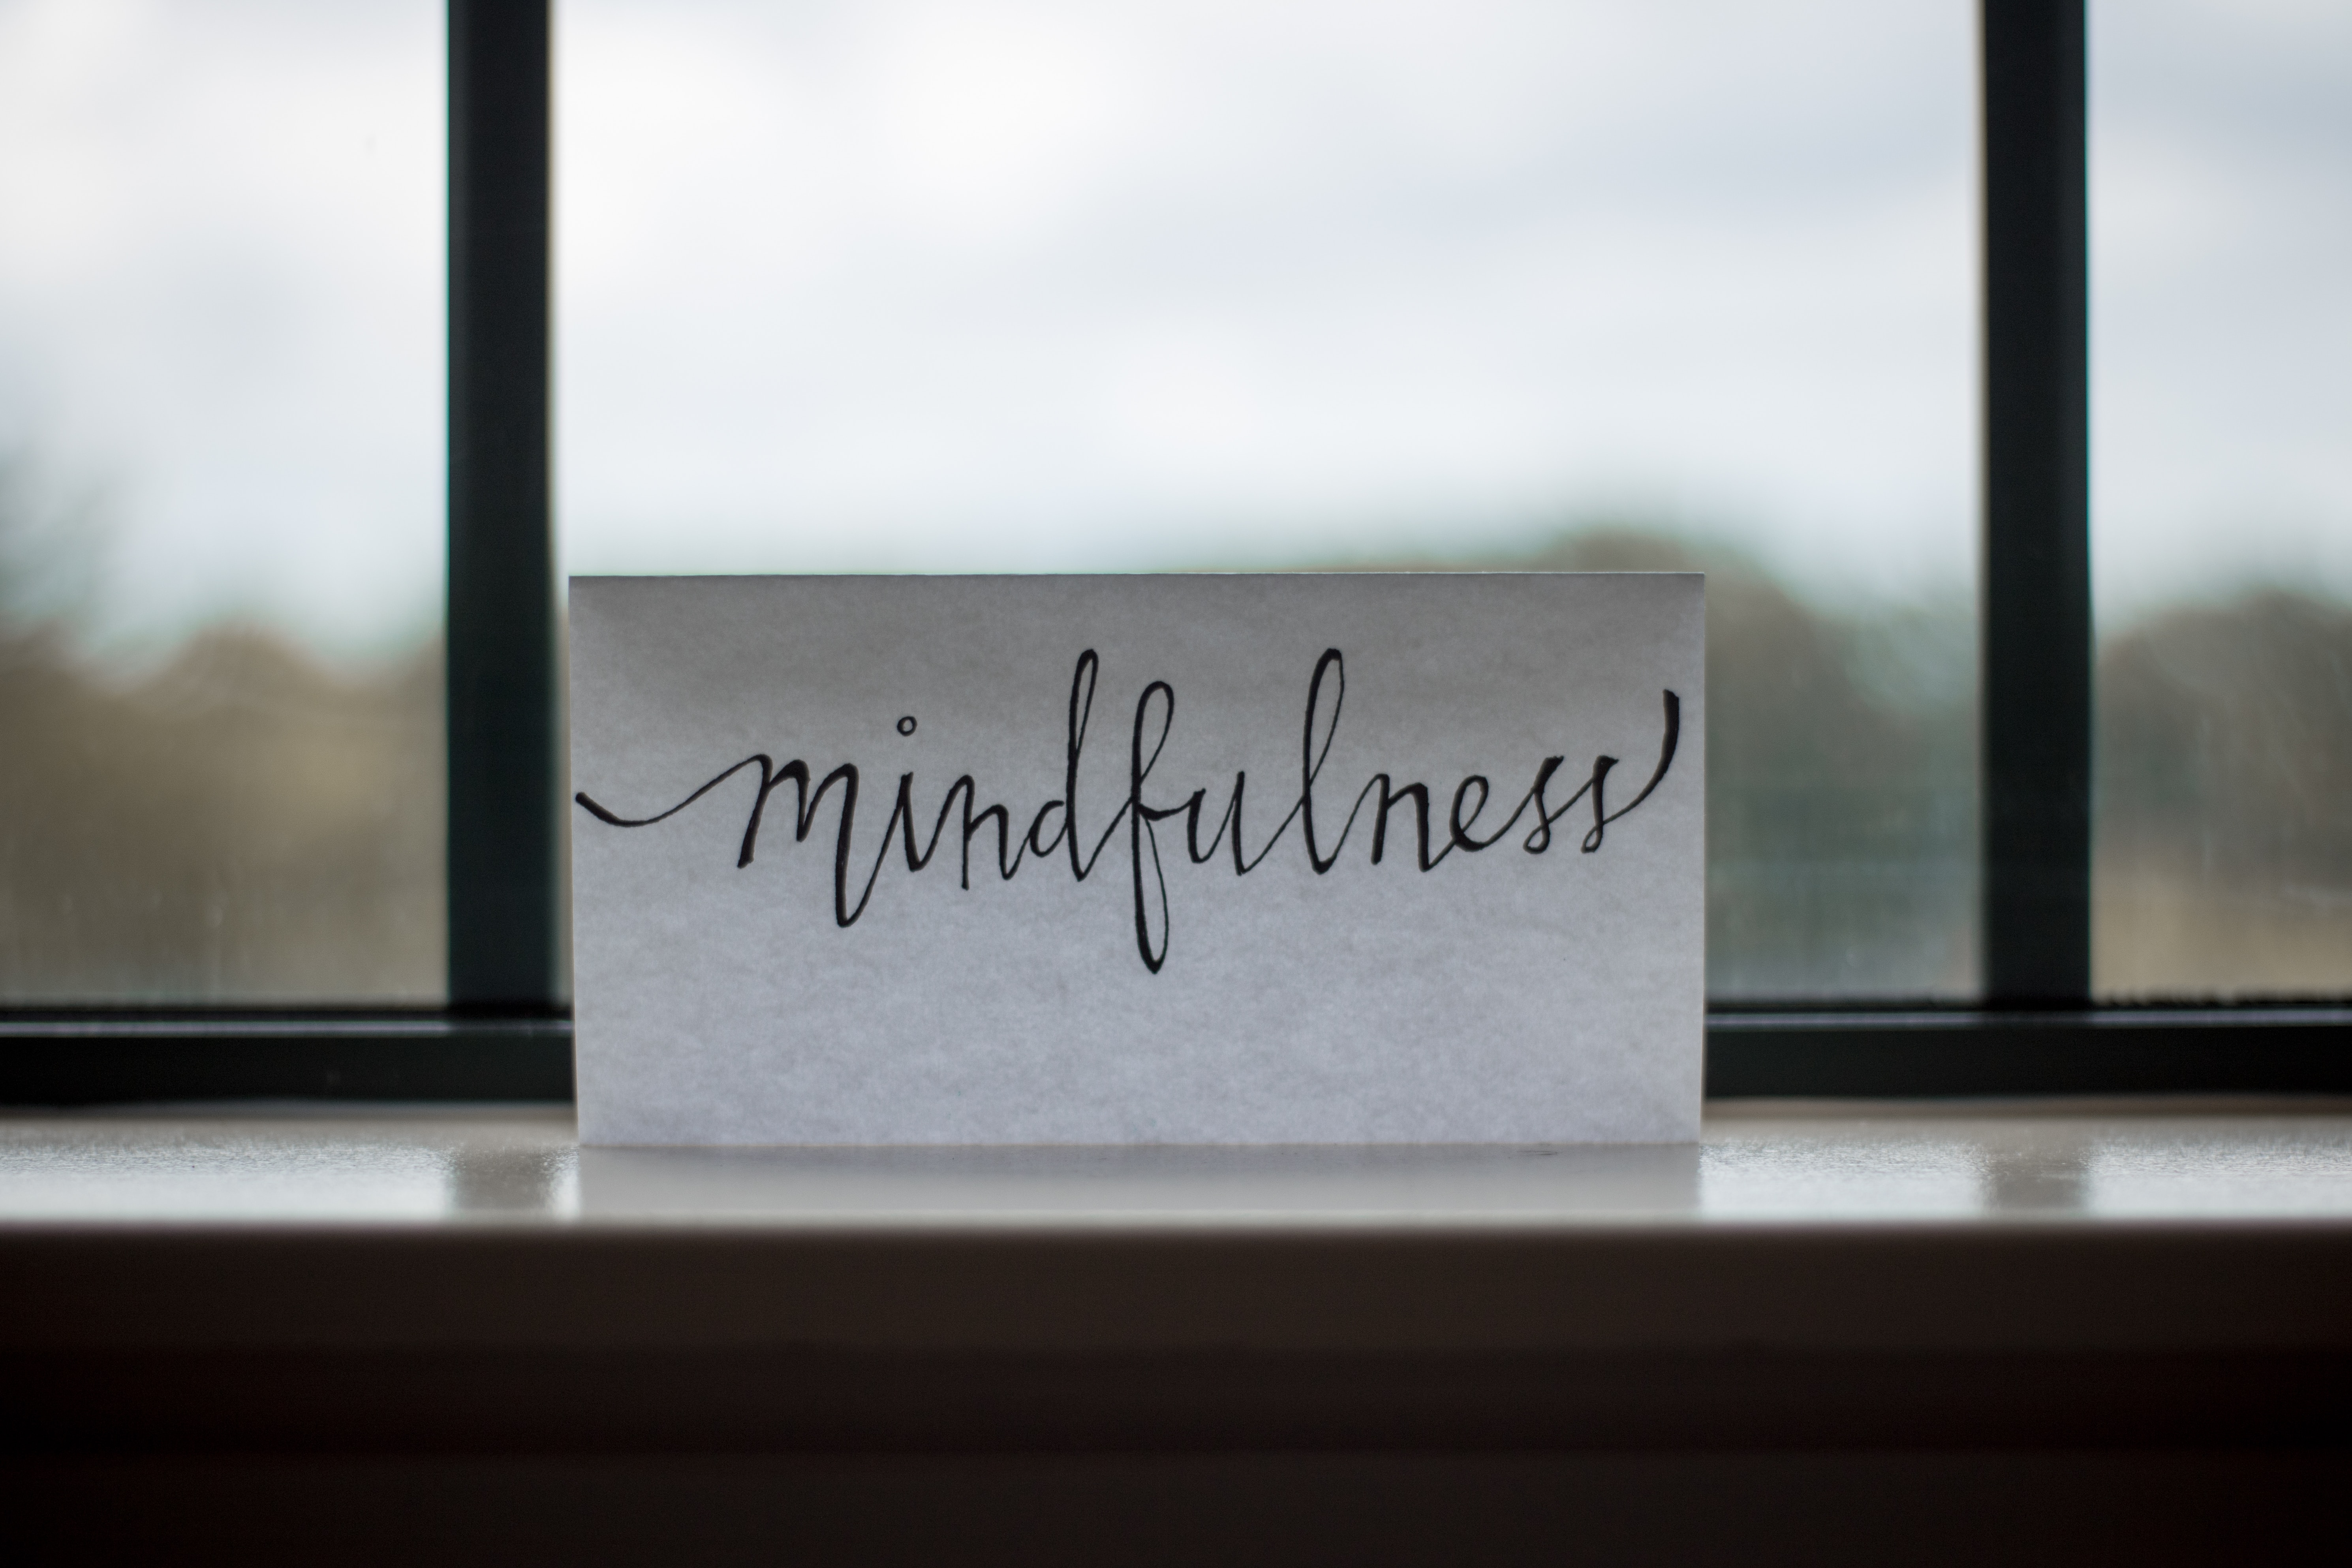 """Mindfulness"" wrritten on white paper, standing on the window ledge"